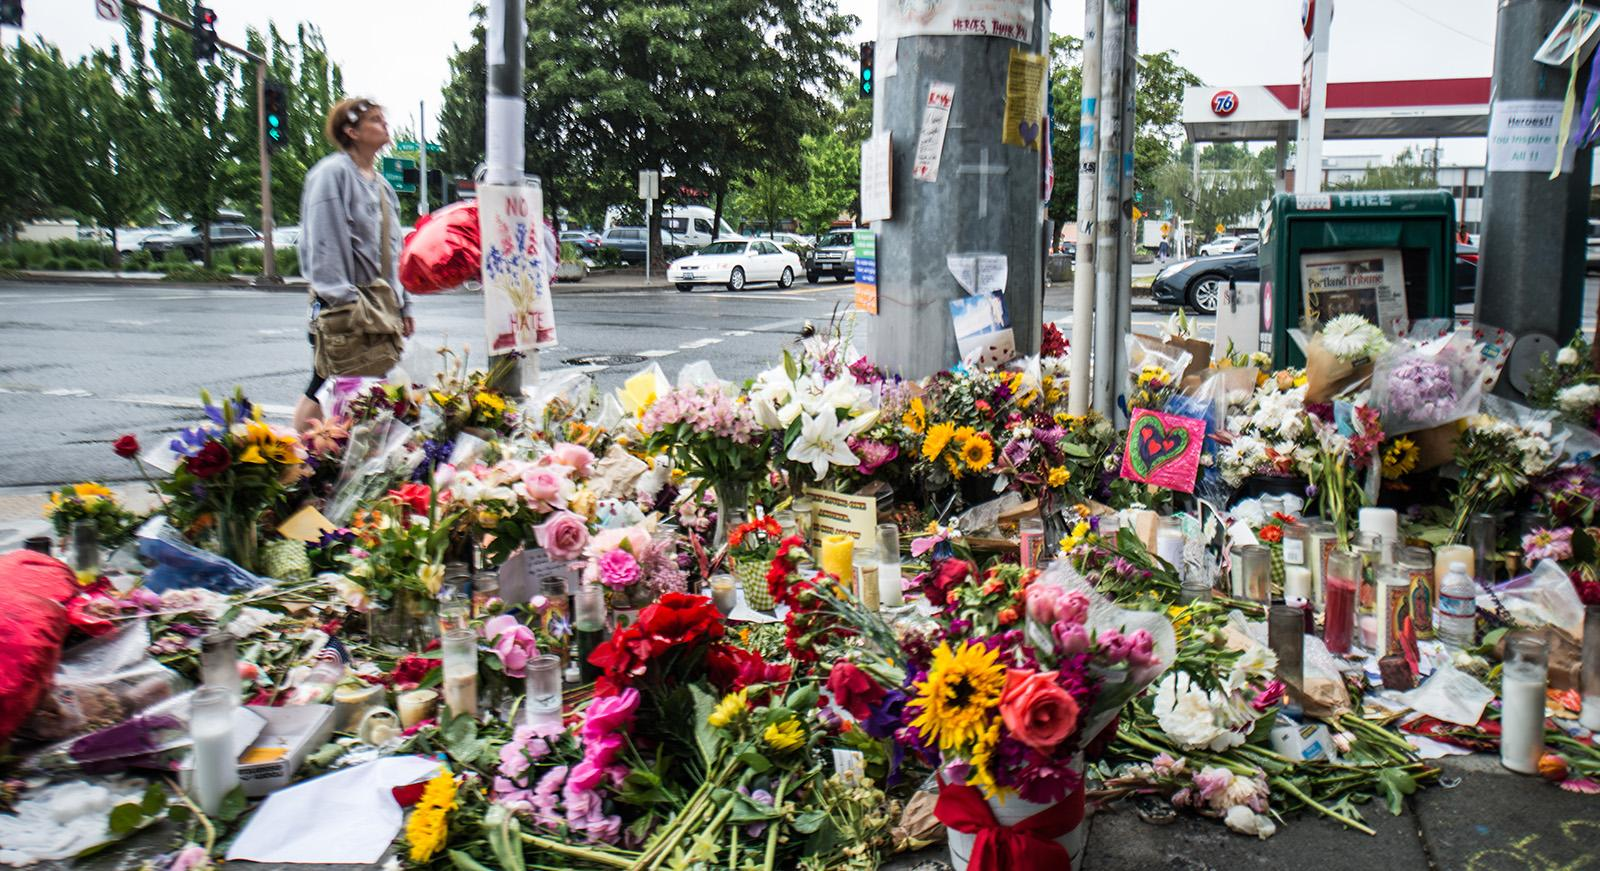 Portland has shown an outpouring of support and love for the heroic actions of the three men who were stabbed, two fatally, after they stood up for two women who were being harassed on a MAX train near Hollywood Transit Center. (KATU photo taken 5-30-2017)